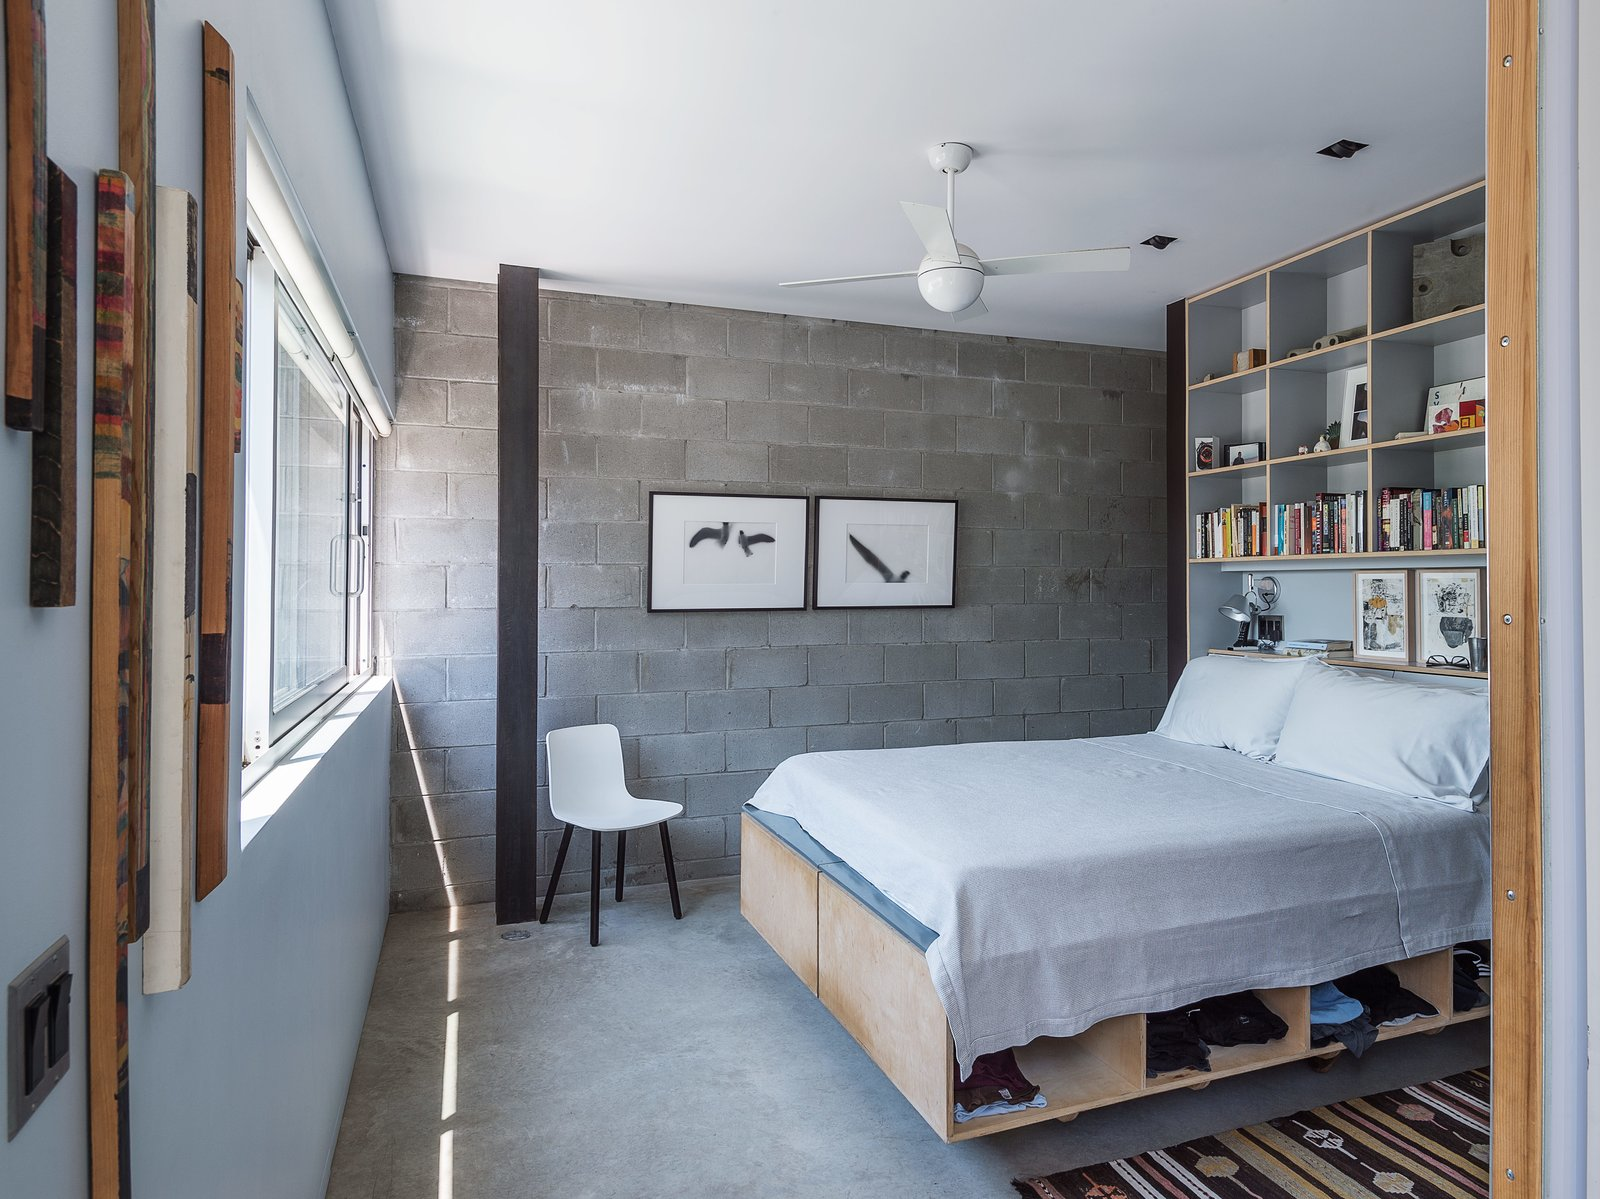 Baumann designed the plywood bed frame and shelving unit in the master bedroom, adjacent to an exposed cinder-block wall, a new addition to the structure.  Tagged: Bedroom, Bed, Chair, Ceiling Lighting, and Concrete Floor. Bedroom by wx